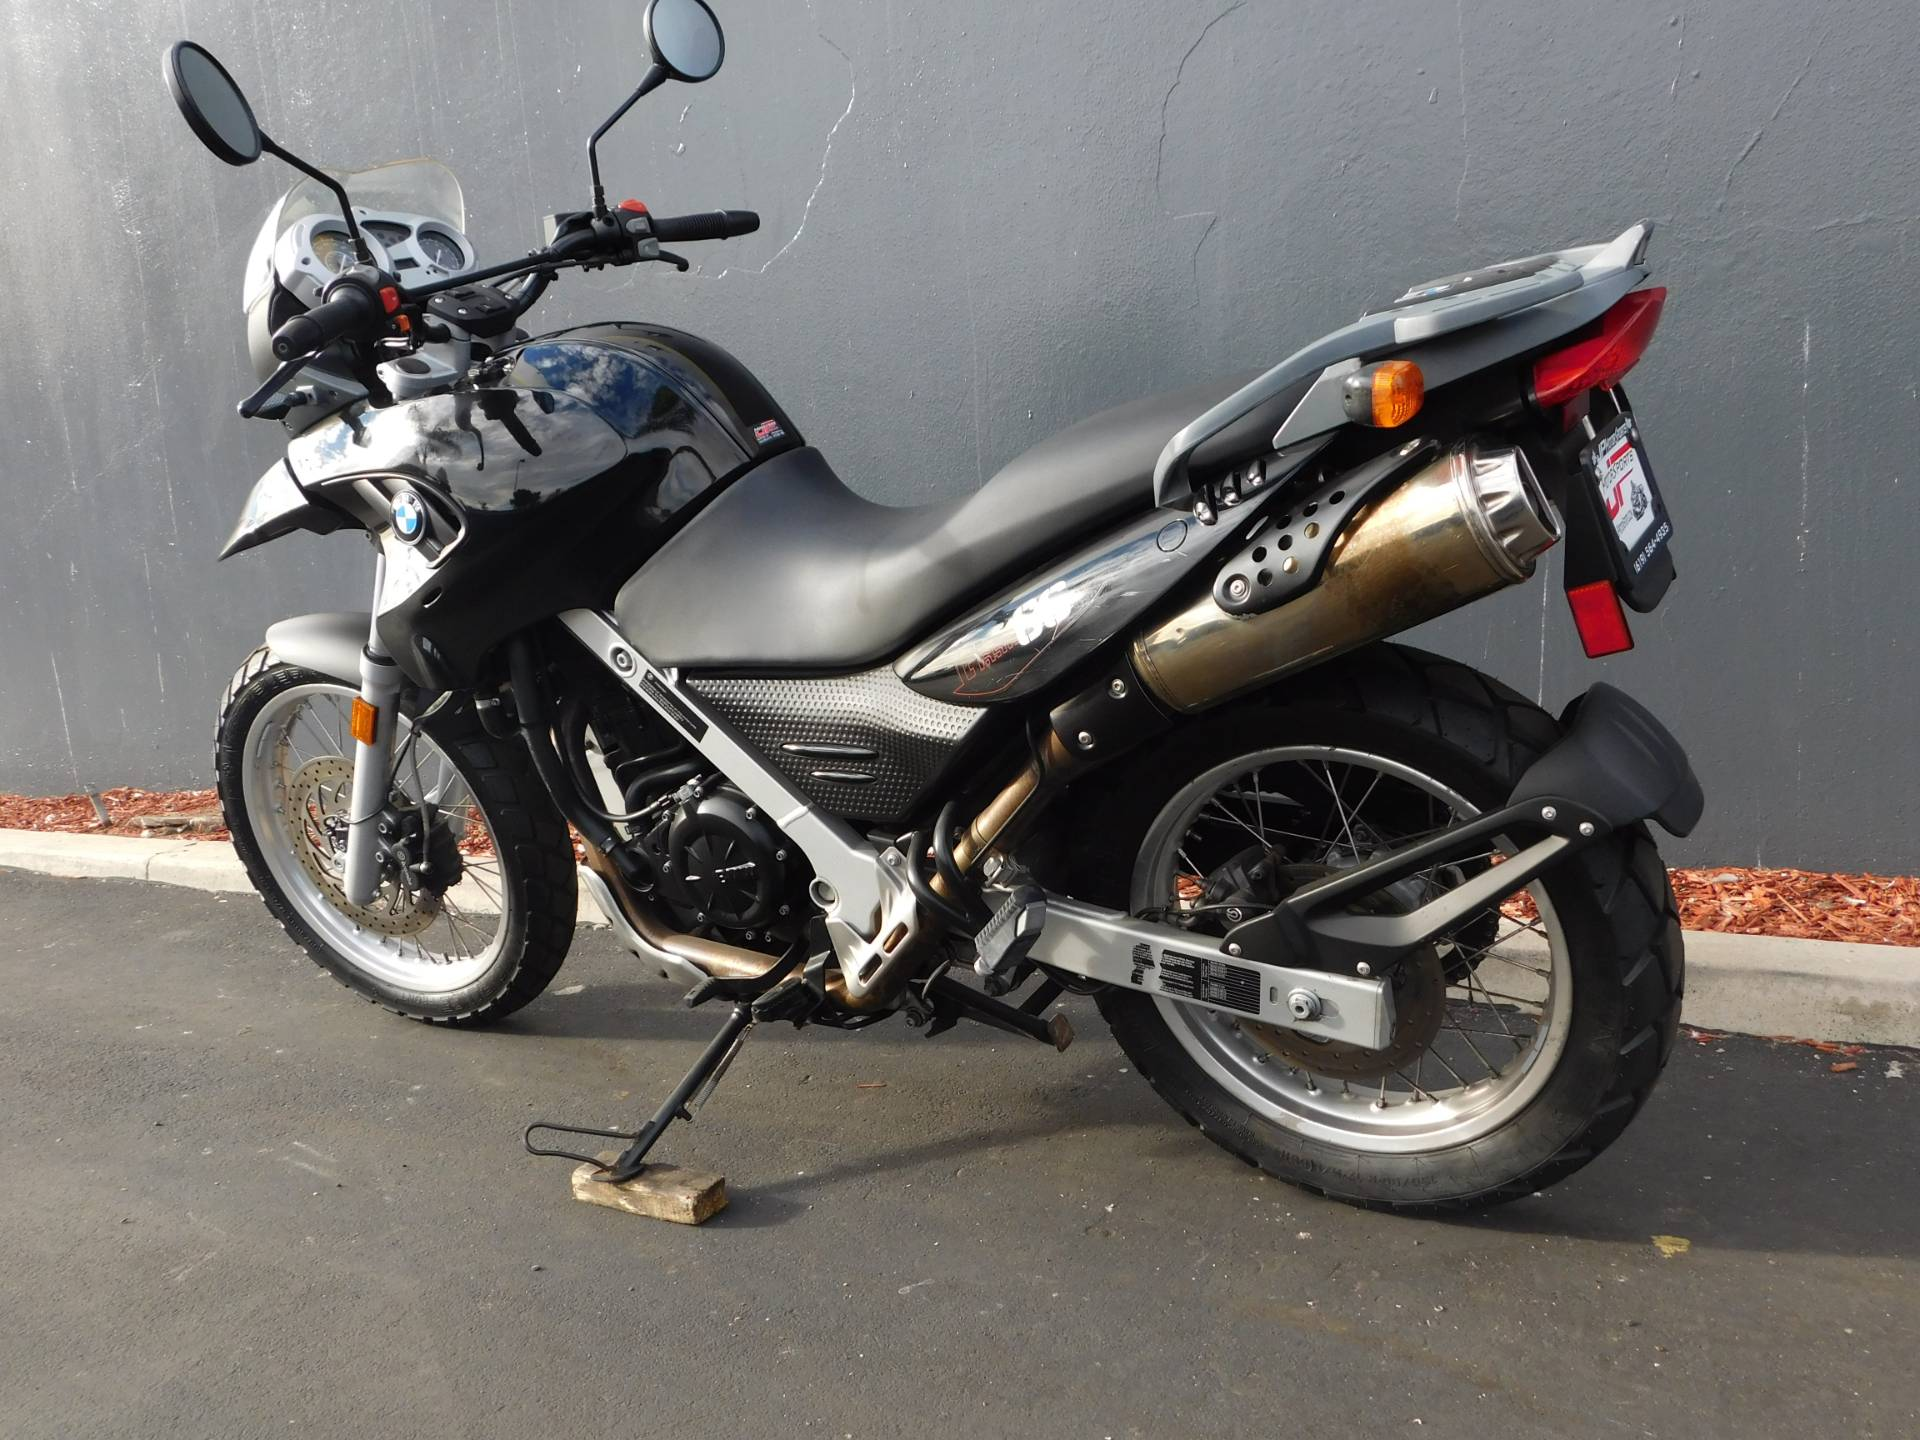 Used 2010 Bmw G 650 Gs Motorcycles In Chula Vista Ca W89041 Deep